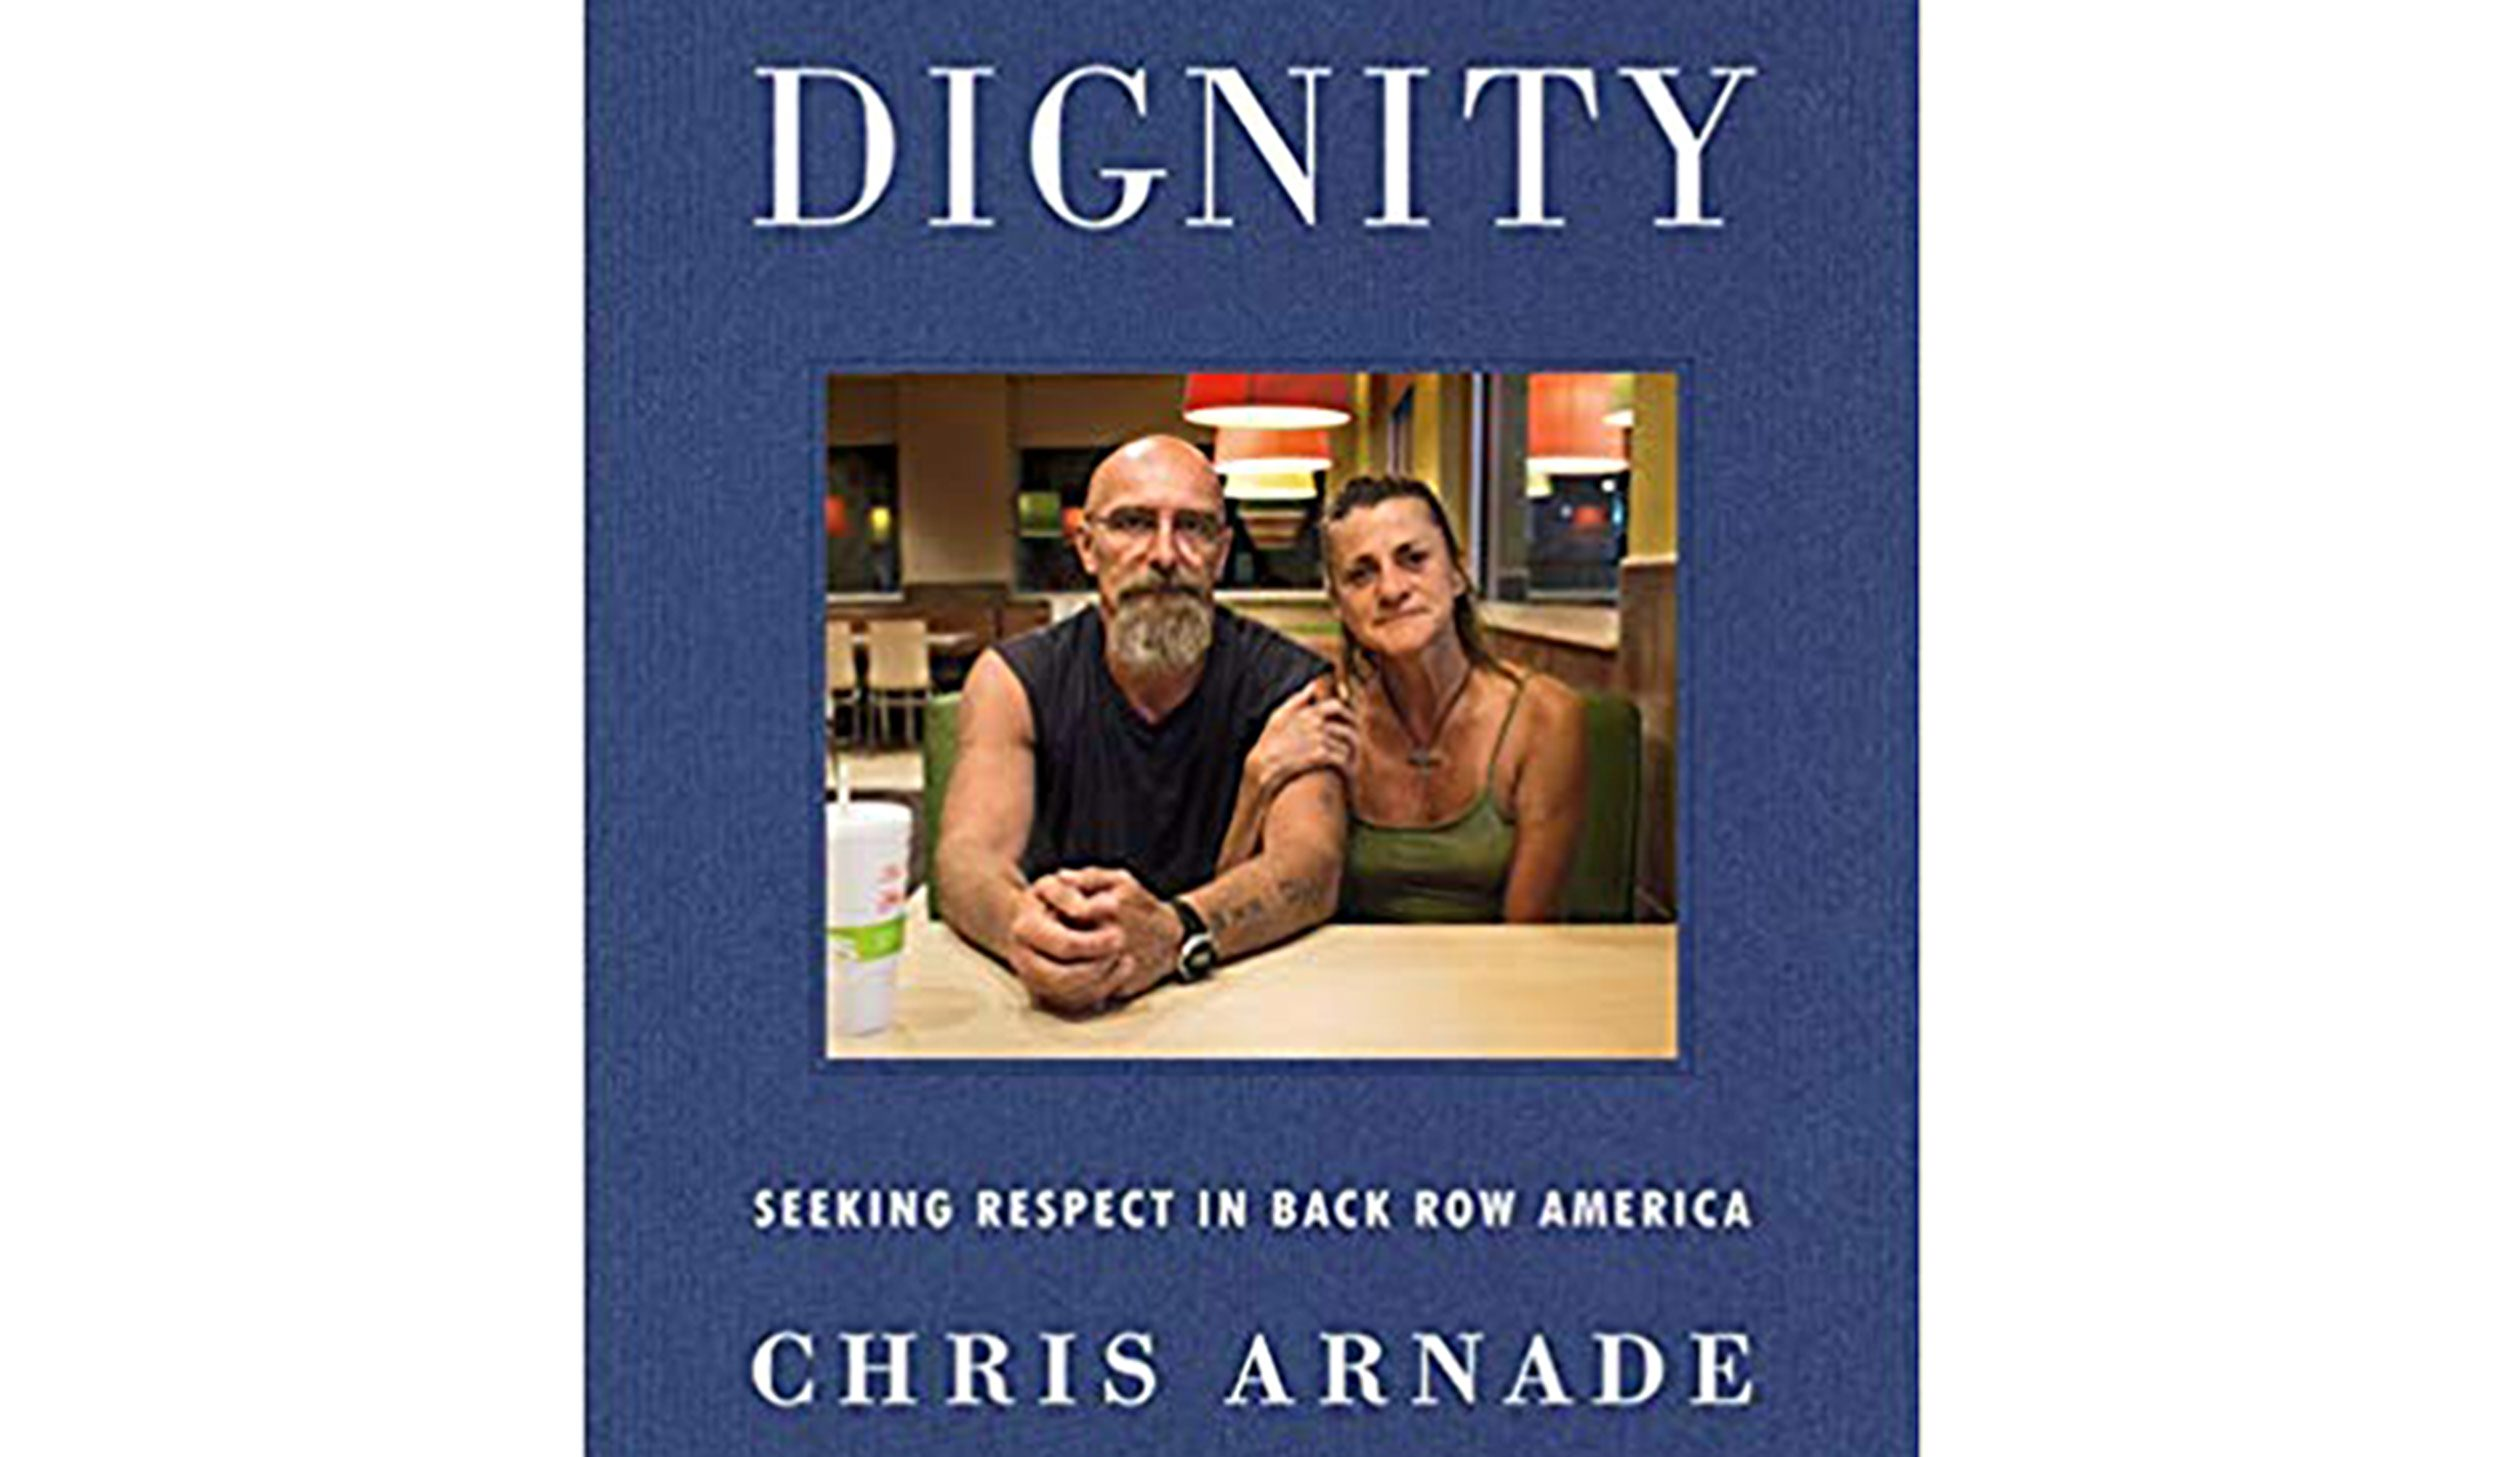 BOOK REVIEW: 'Dignity' by Chris Armade